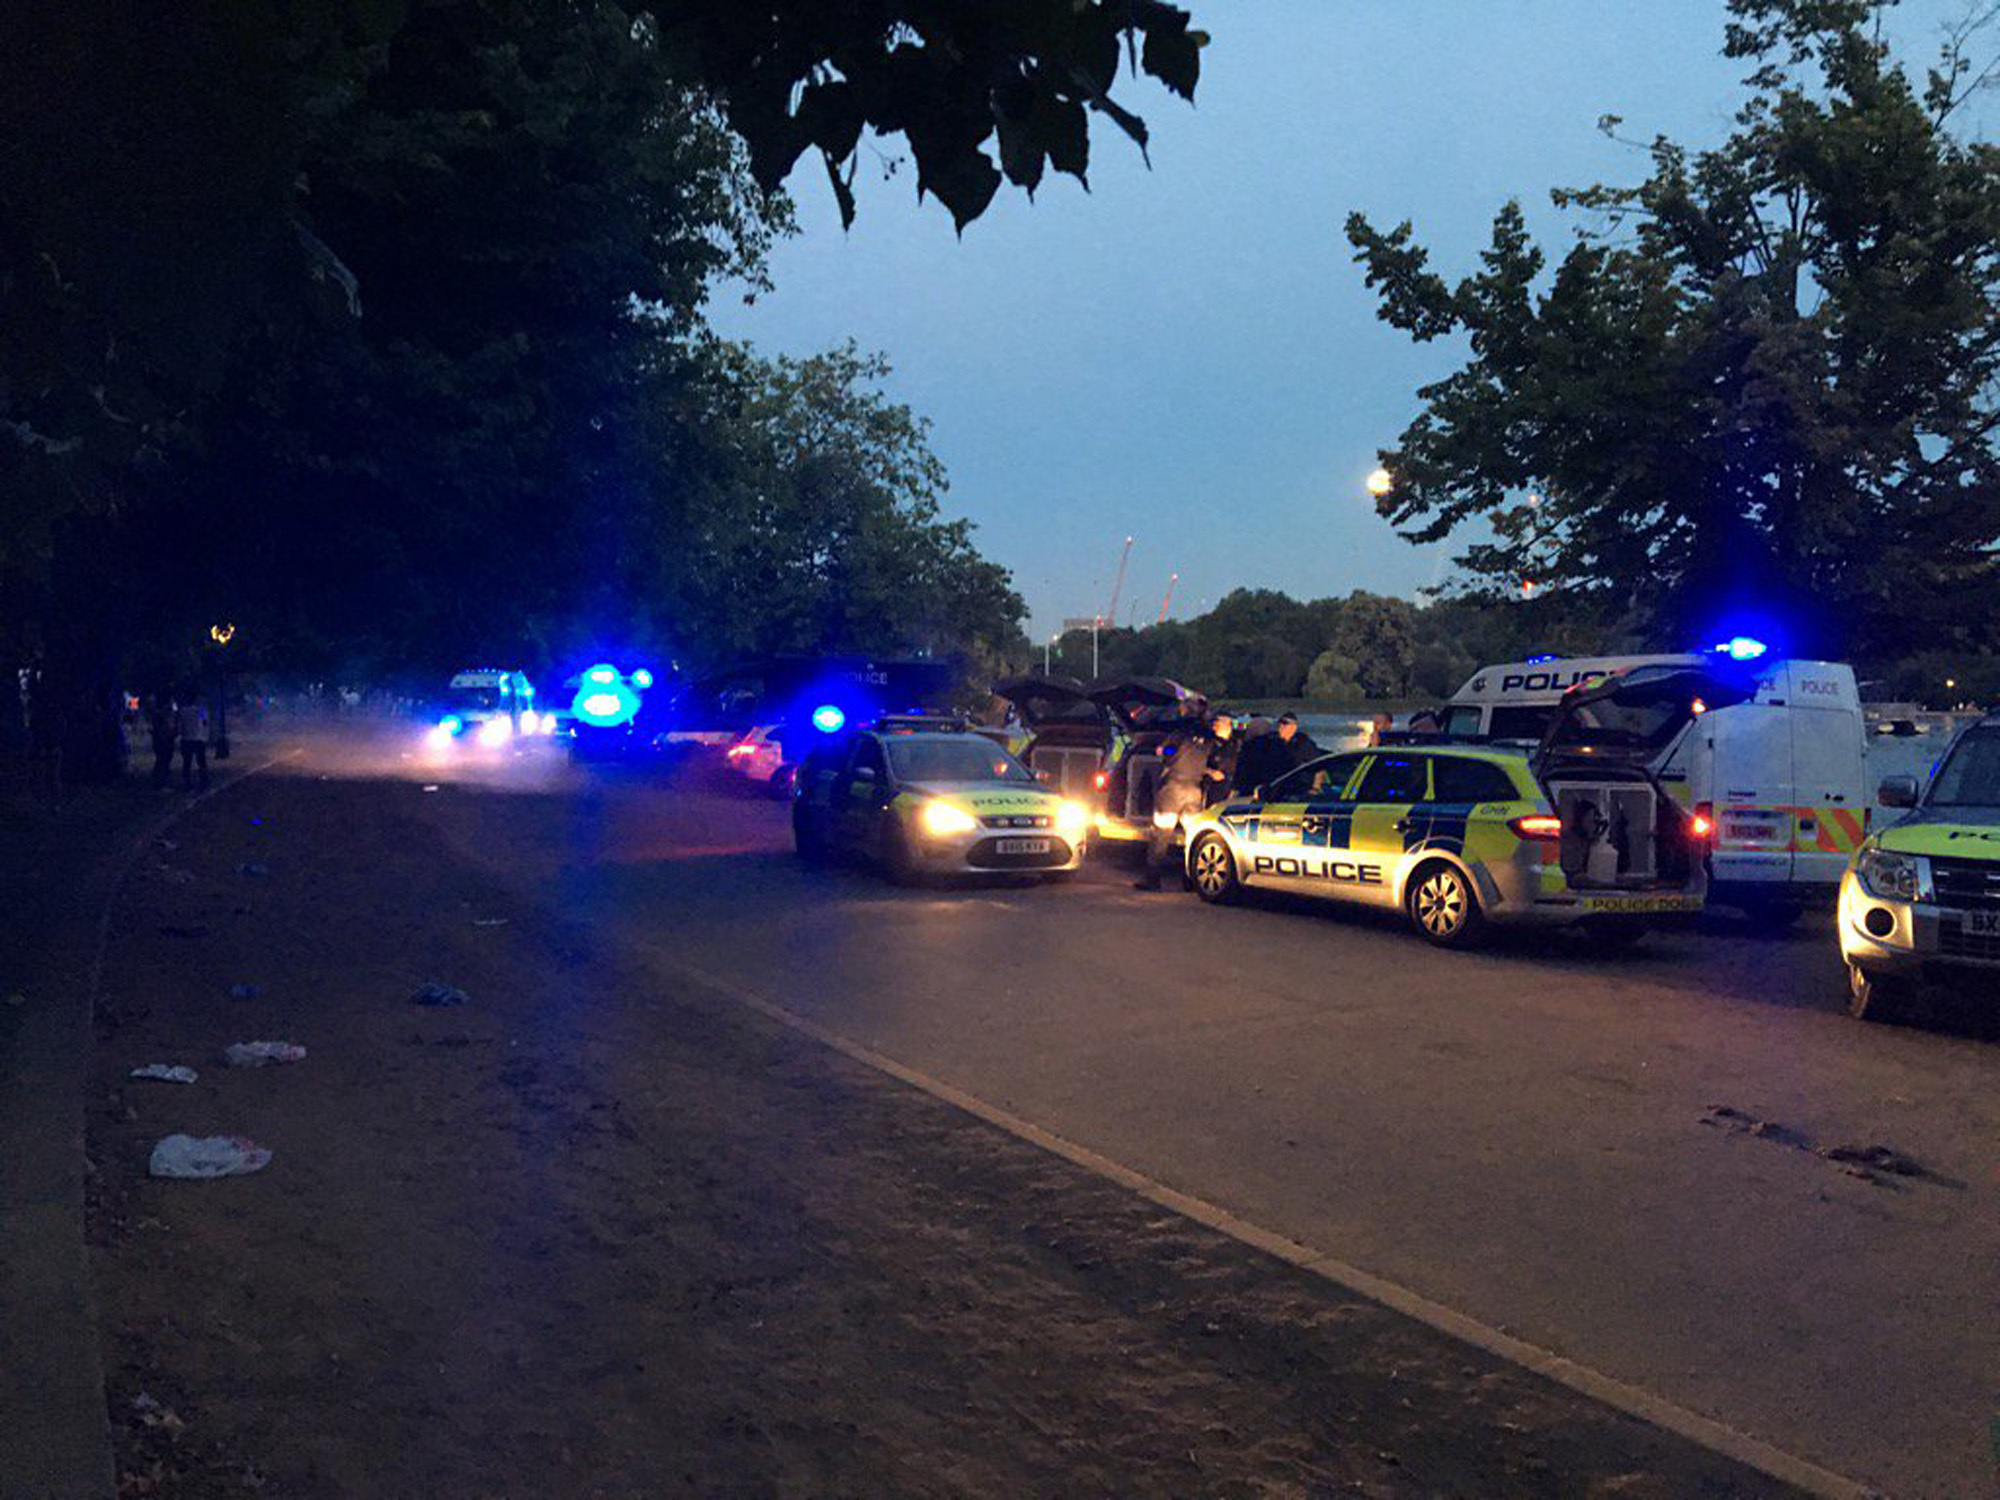 Scotland Yard said one officer was stabbed and another was injured by a bottle when the spontaneous water fight by the Serpentine in London's Hyde Park became hostile at about 8.40pm.